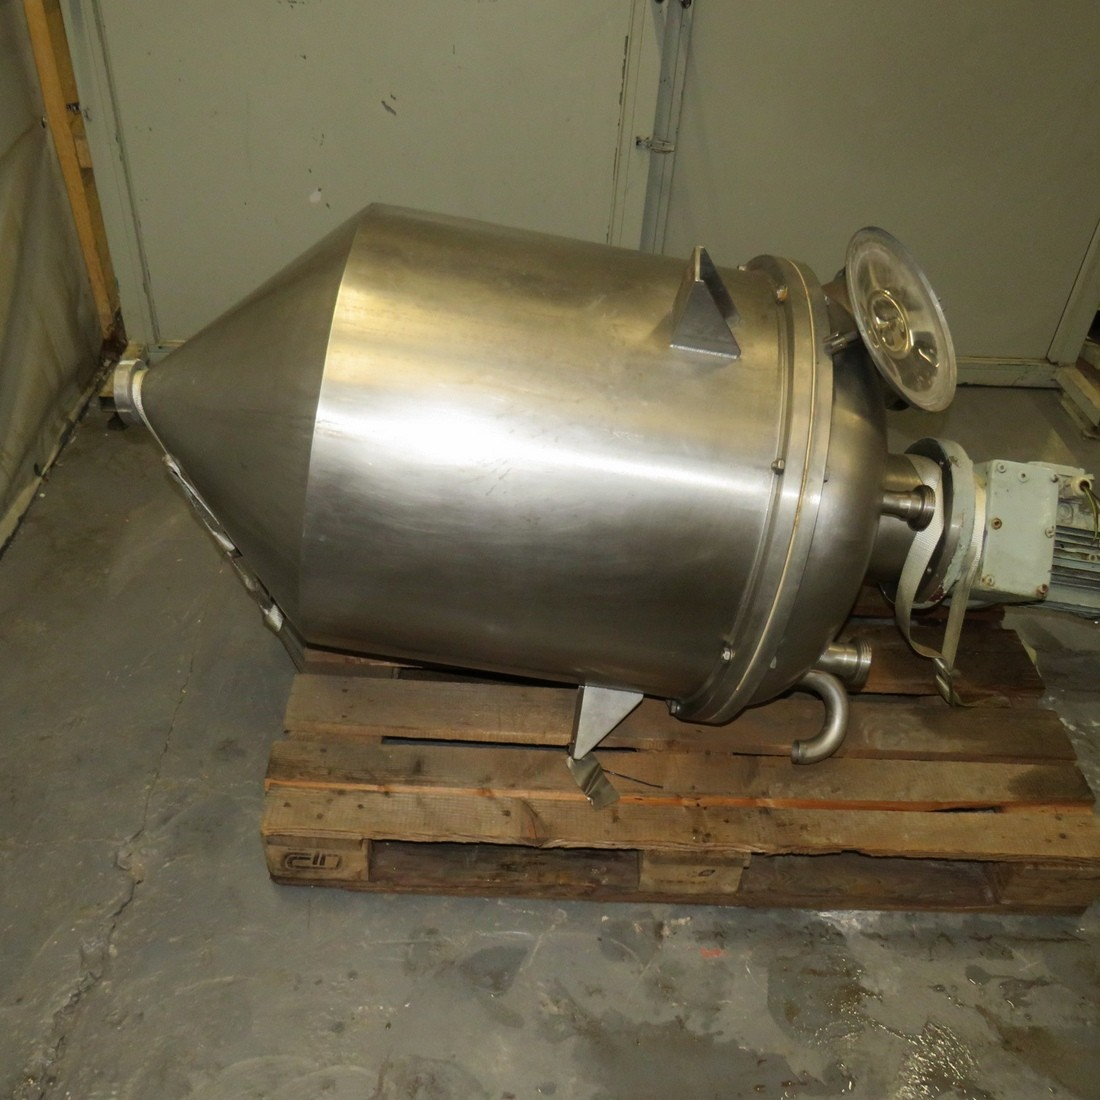 R6MA6173 Stainless steel mixing tank - 180 liters